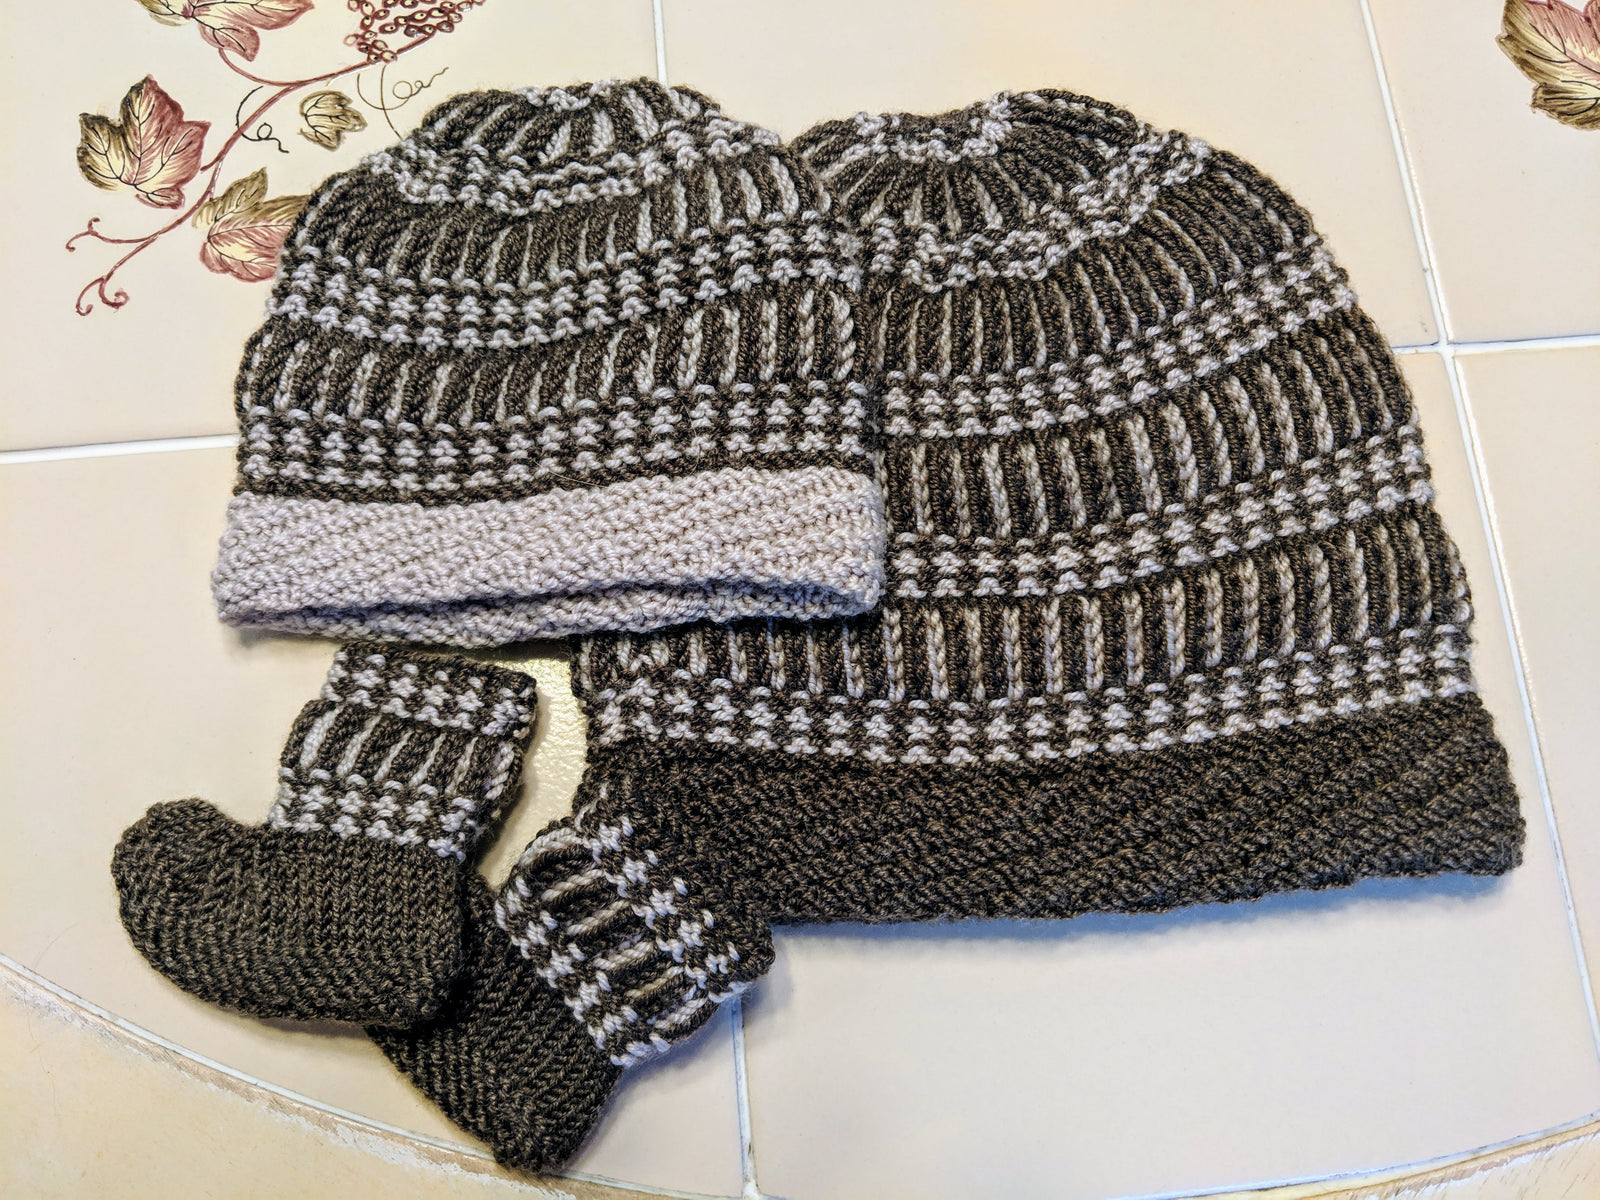 ddcd178f667d Brioche Knitting and the Rudbeckia Hat by Andrea Mowry